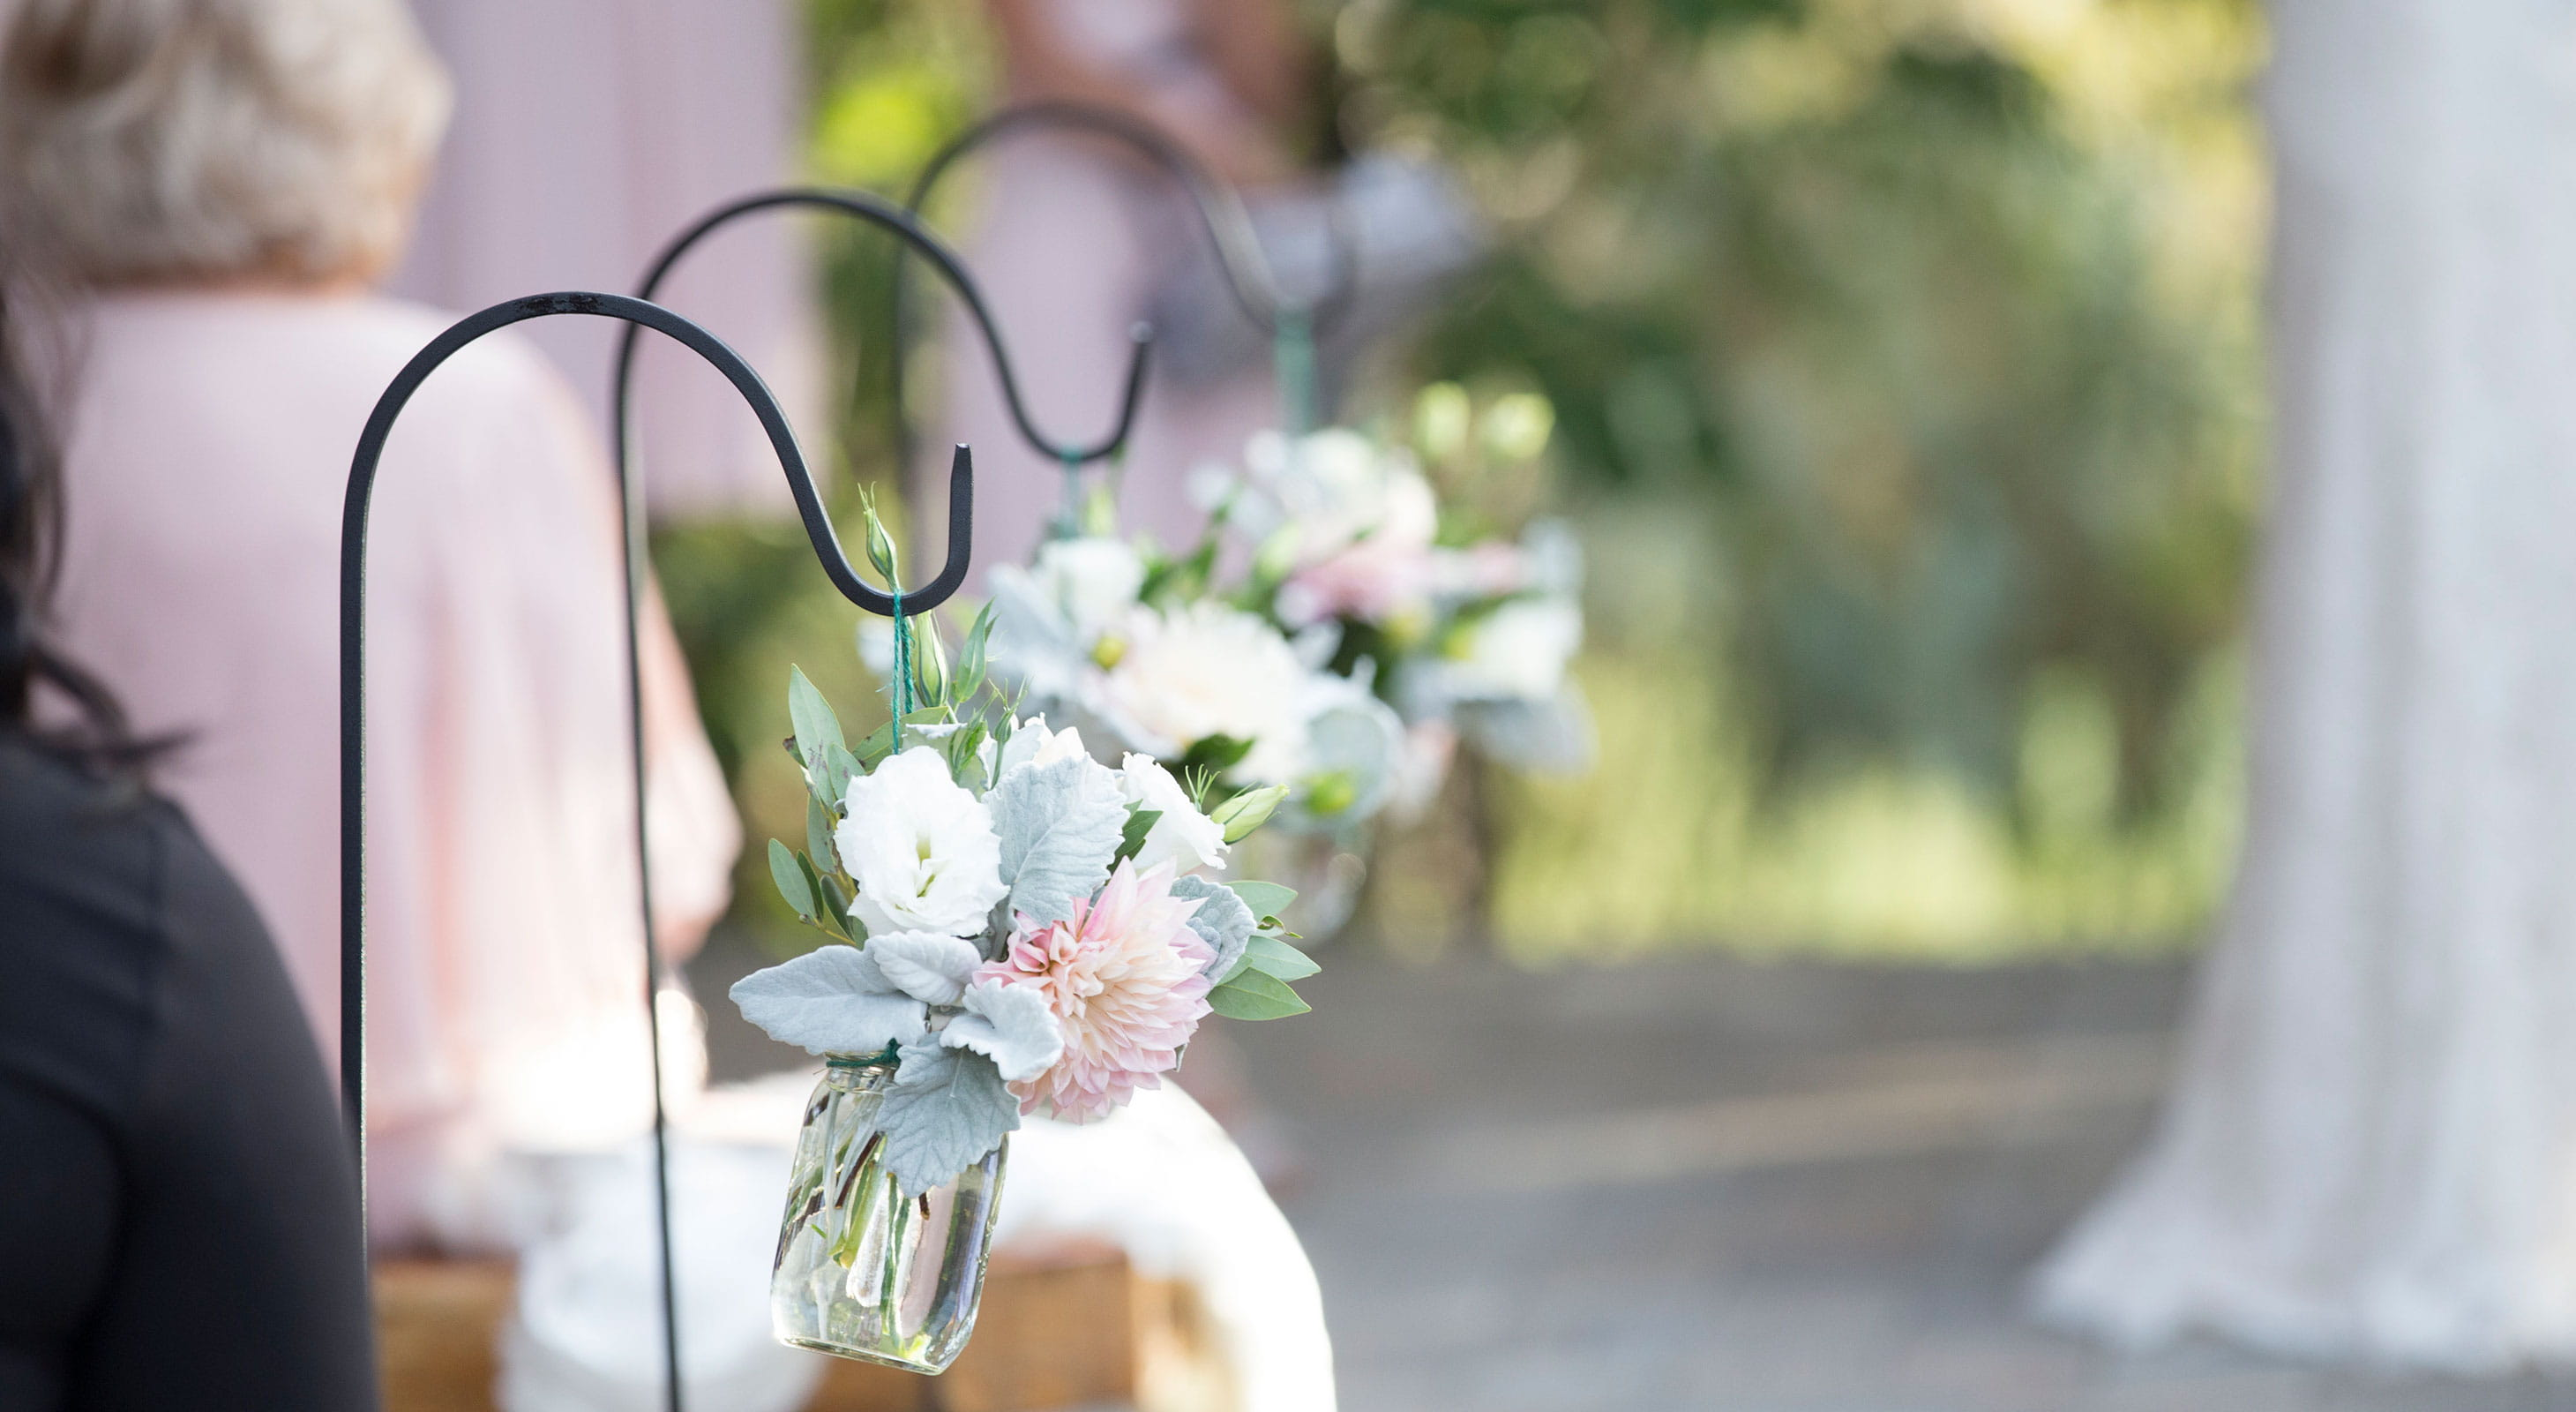 Hanging flower vases along the wedding aisle